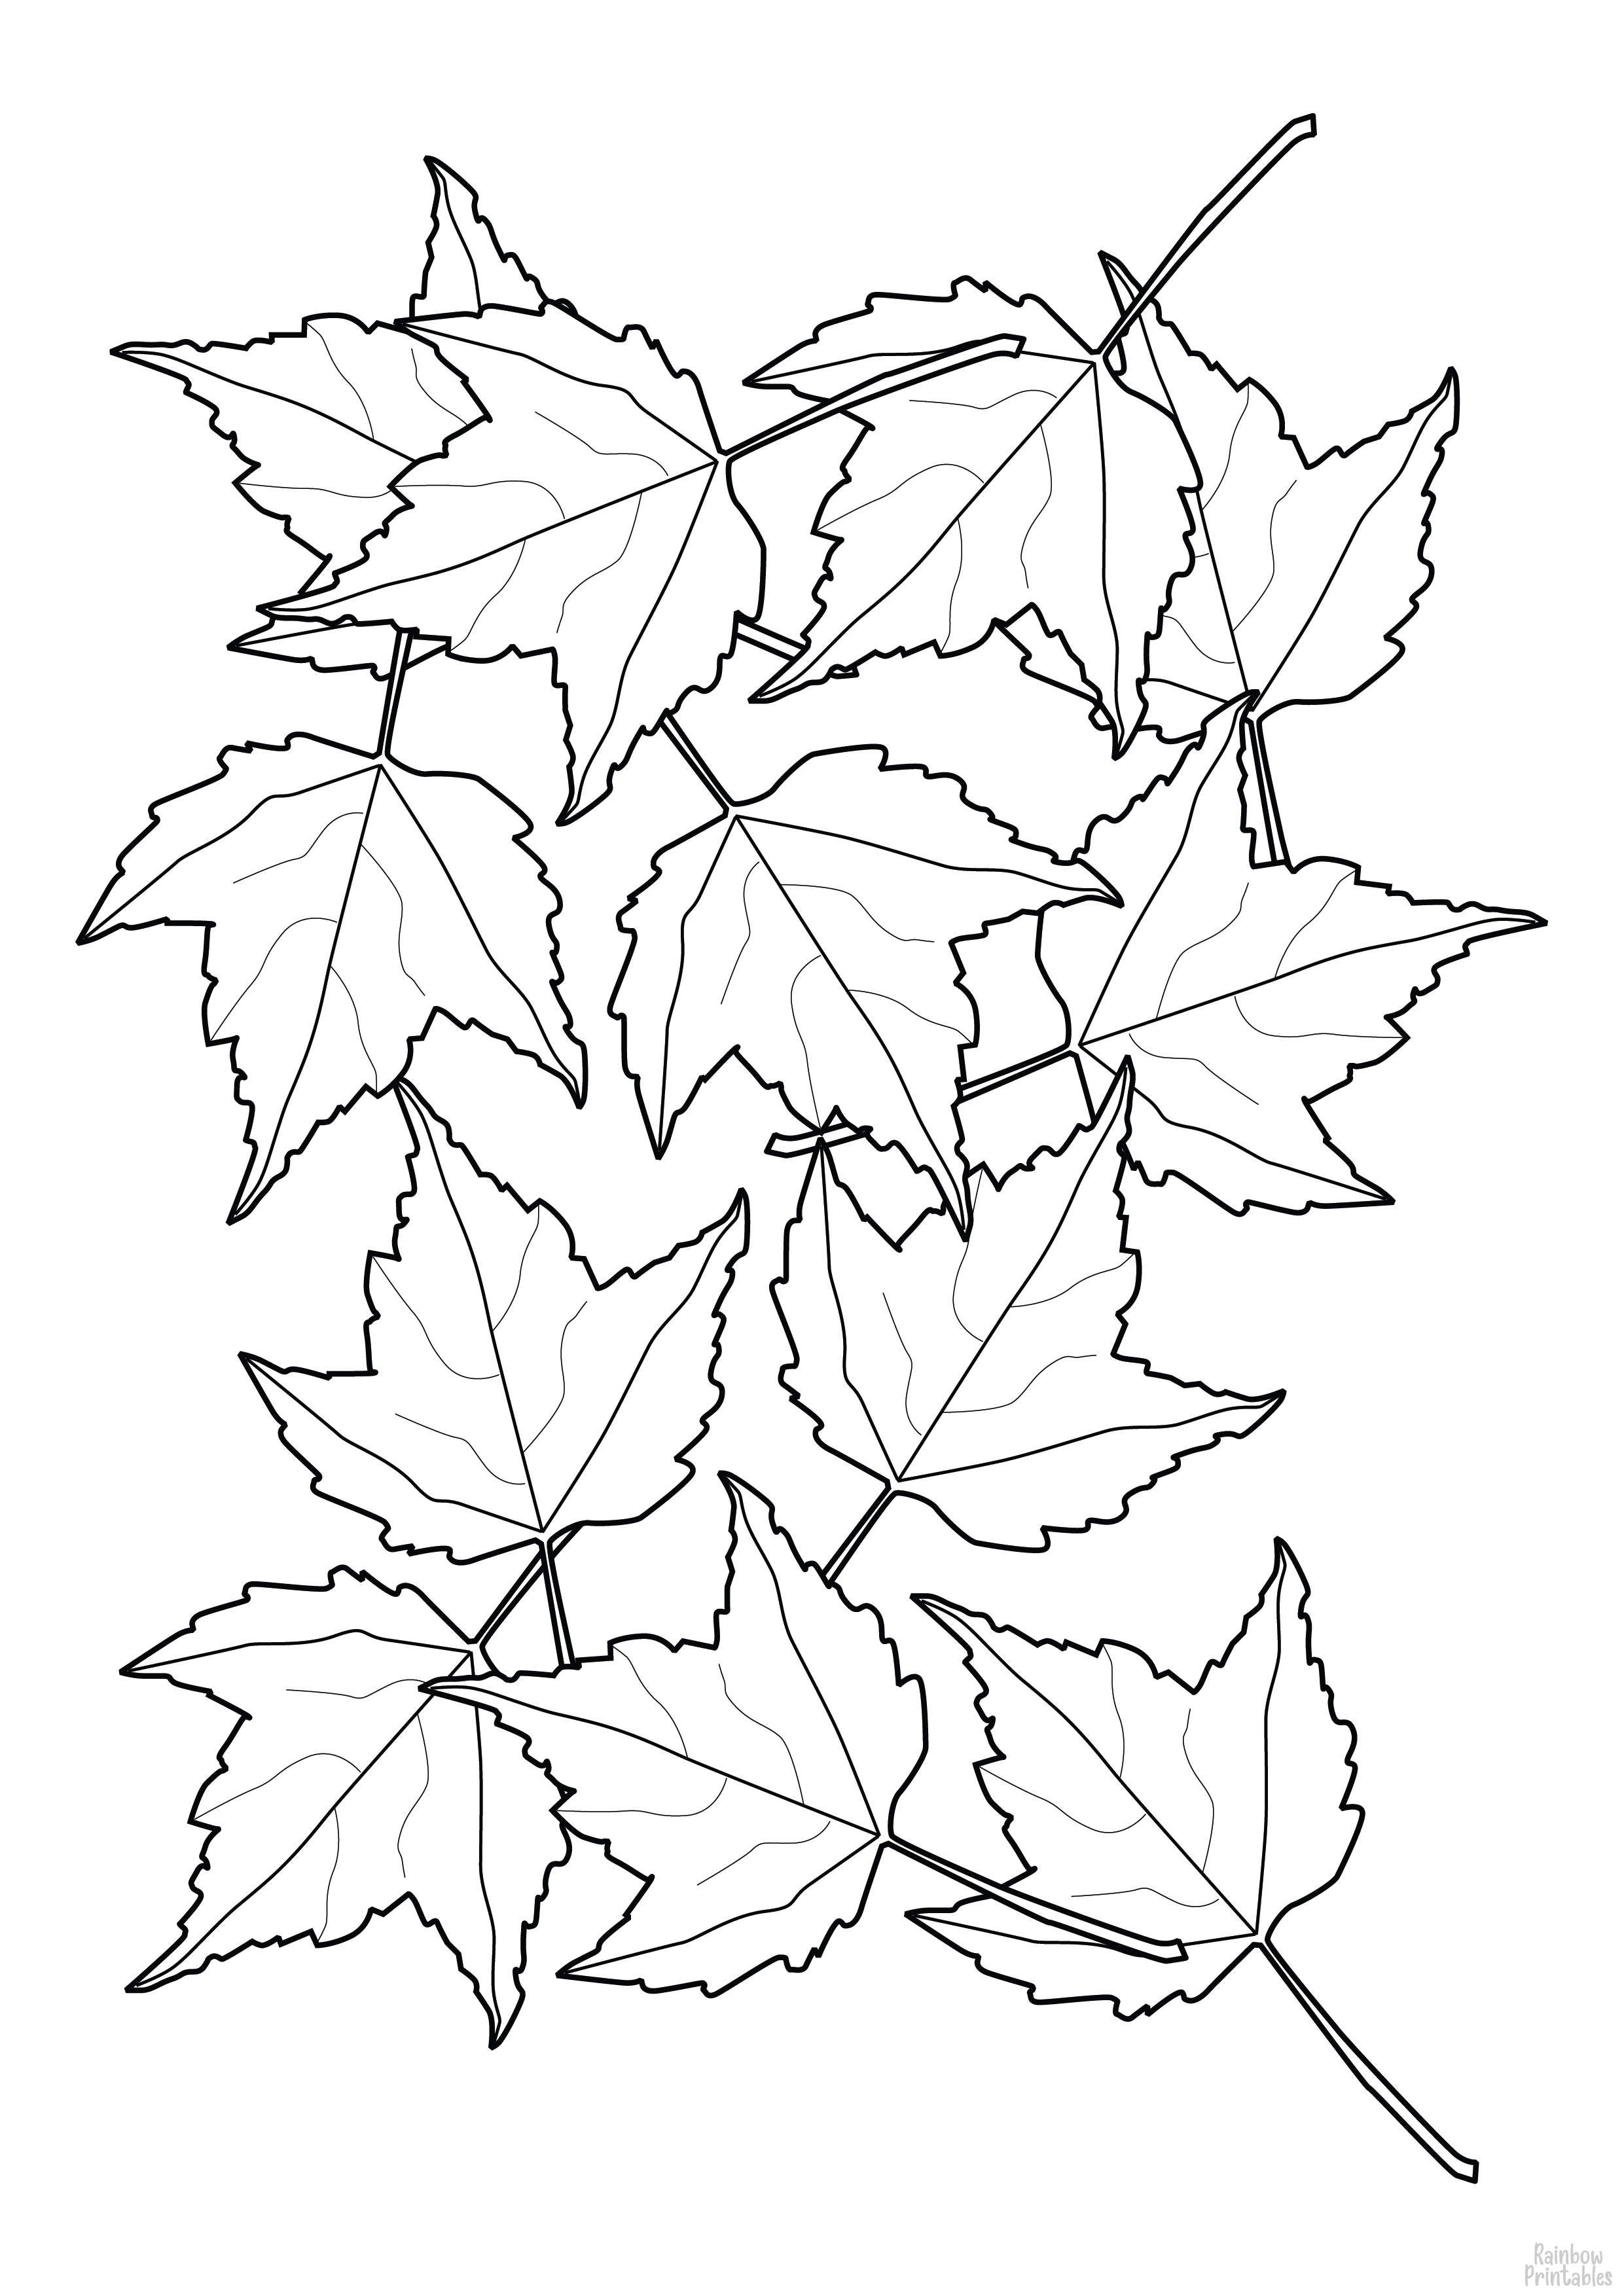 Line Drawing Fall Leaves-02 Coloring Pages for Kids Art Activities Ideas